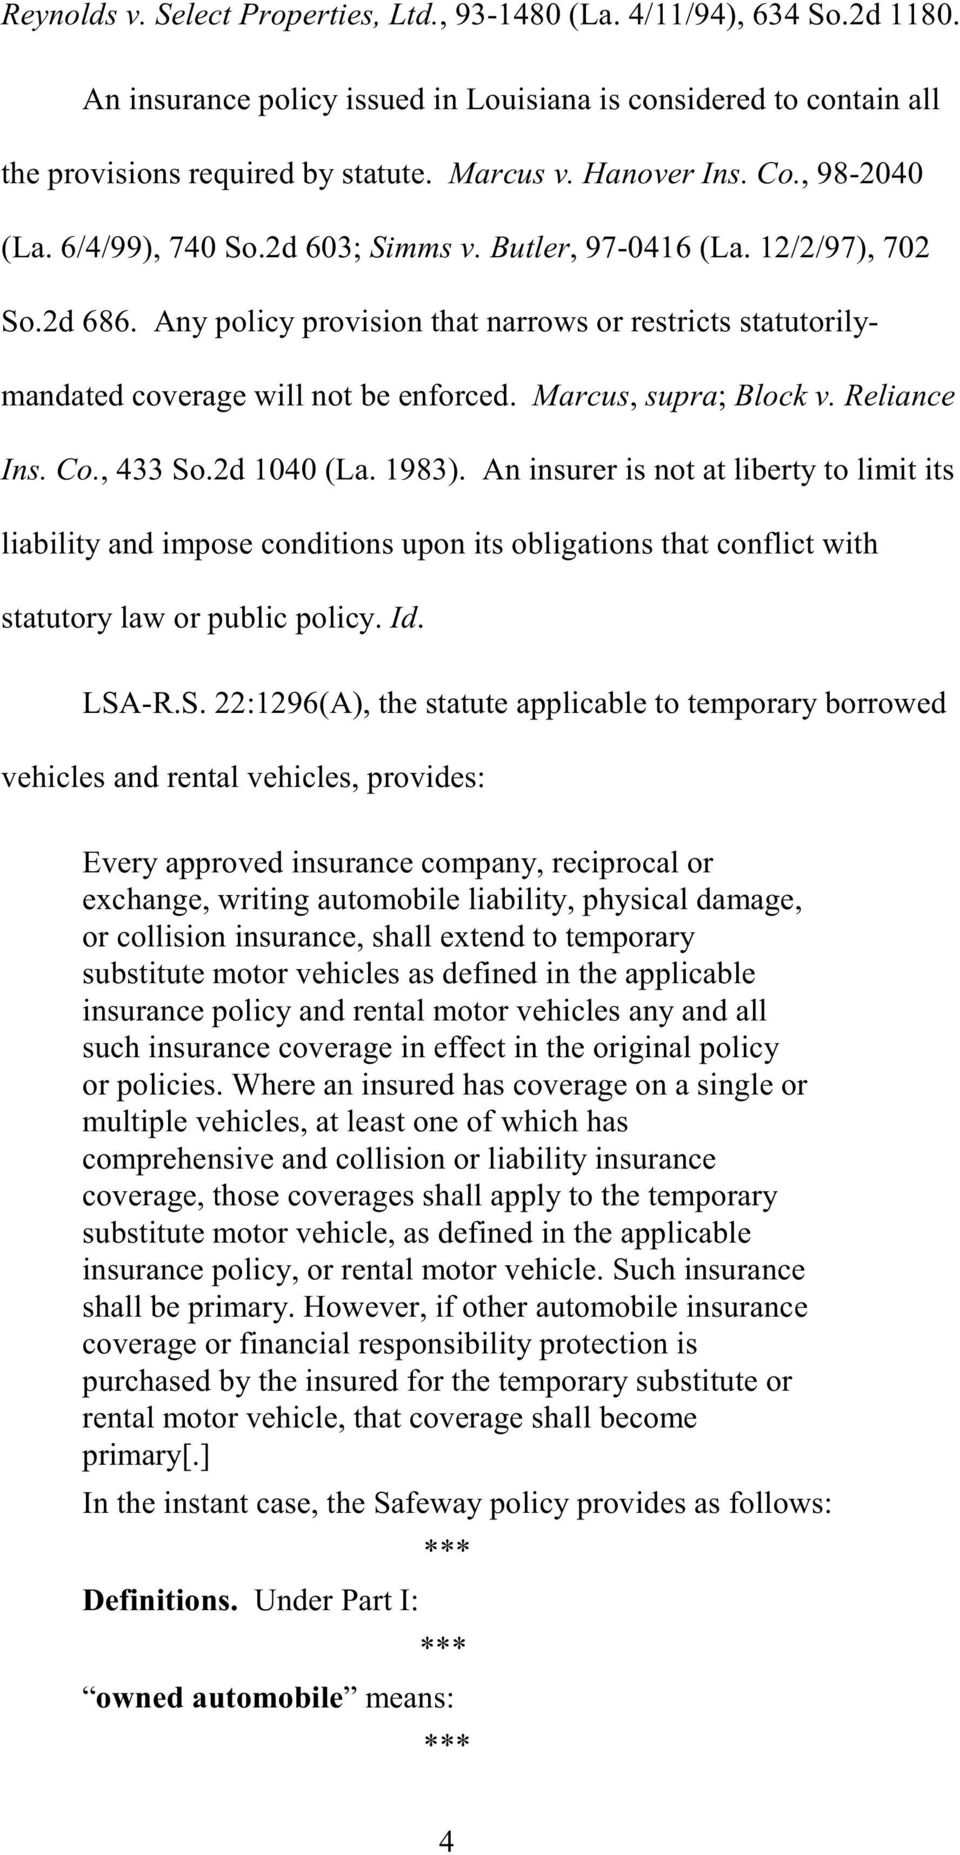 Any policy provision that narrows or restricts statutorilymandated coverage will not be enforced. Marcus, supra; Block v. Reliance Ins. Co., 433 So.2d 1040 (La. 1983).